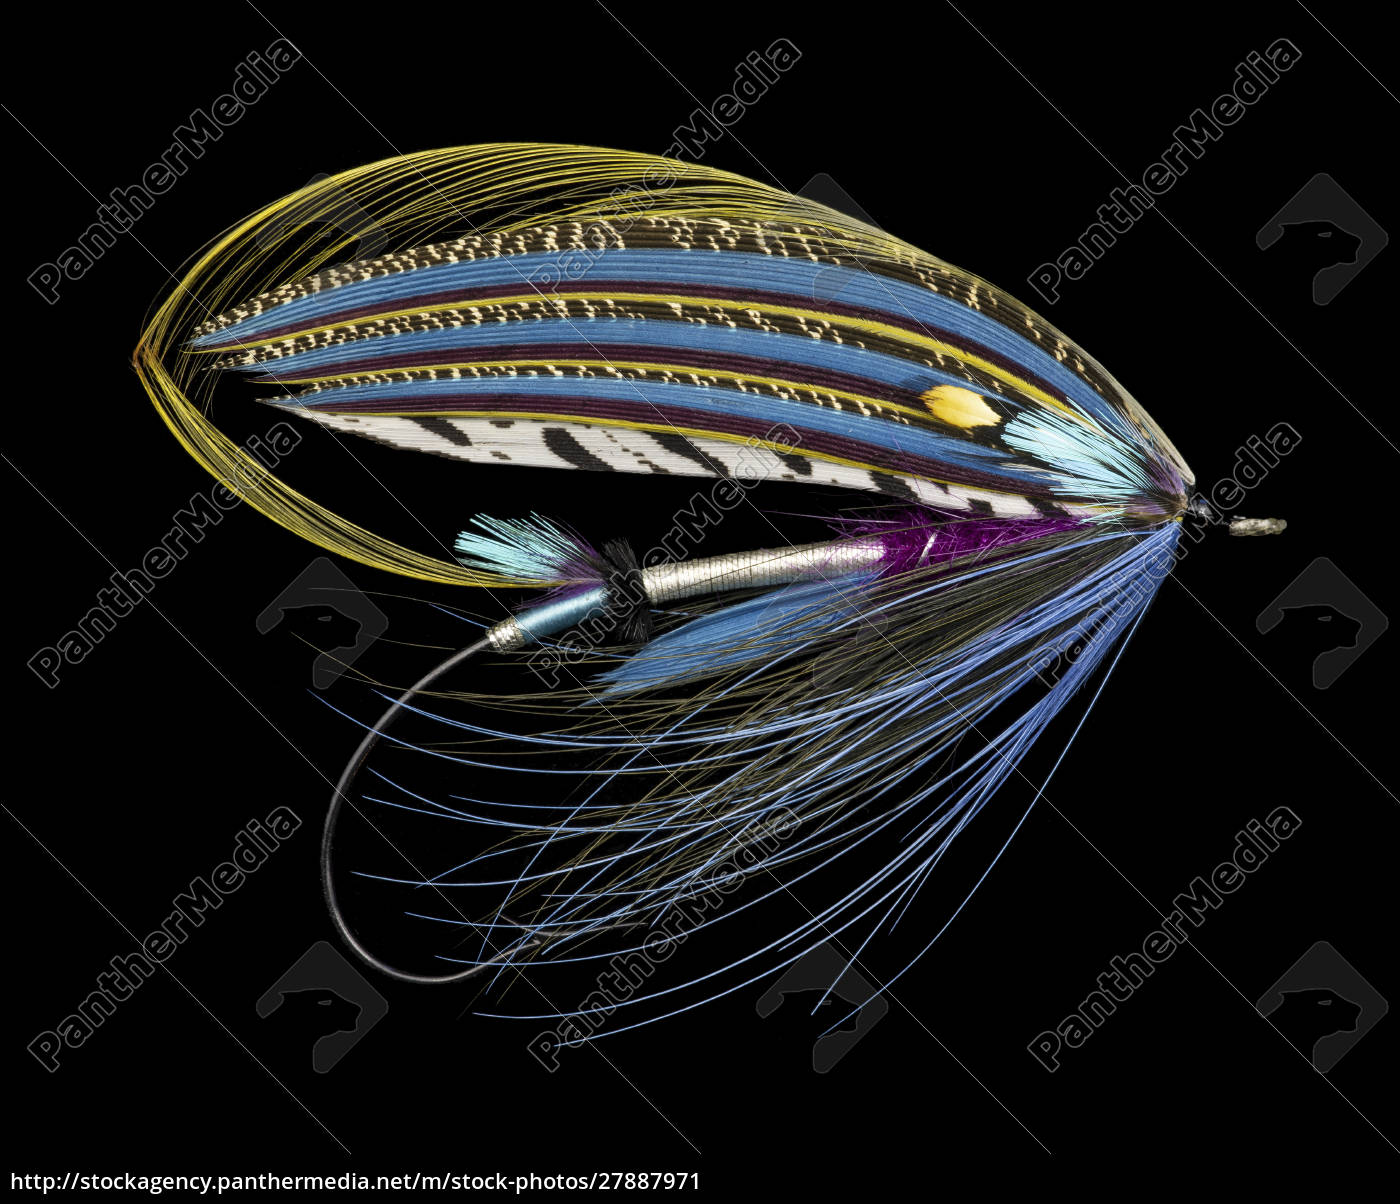 atlantic, salmon, fly, designs, 'sentinal' - 27887971